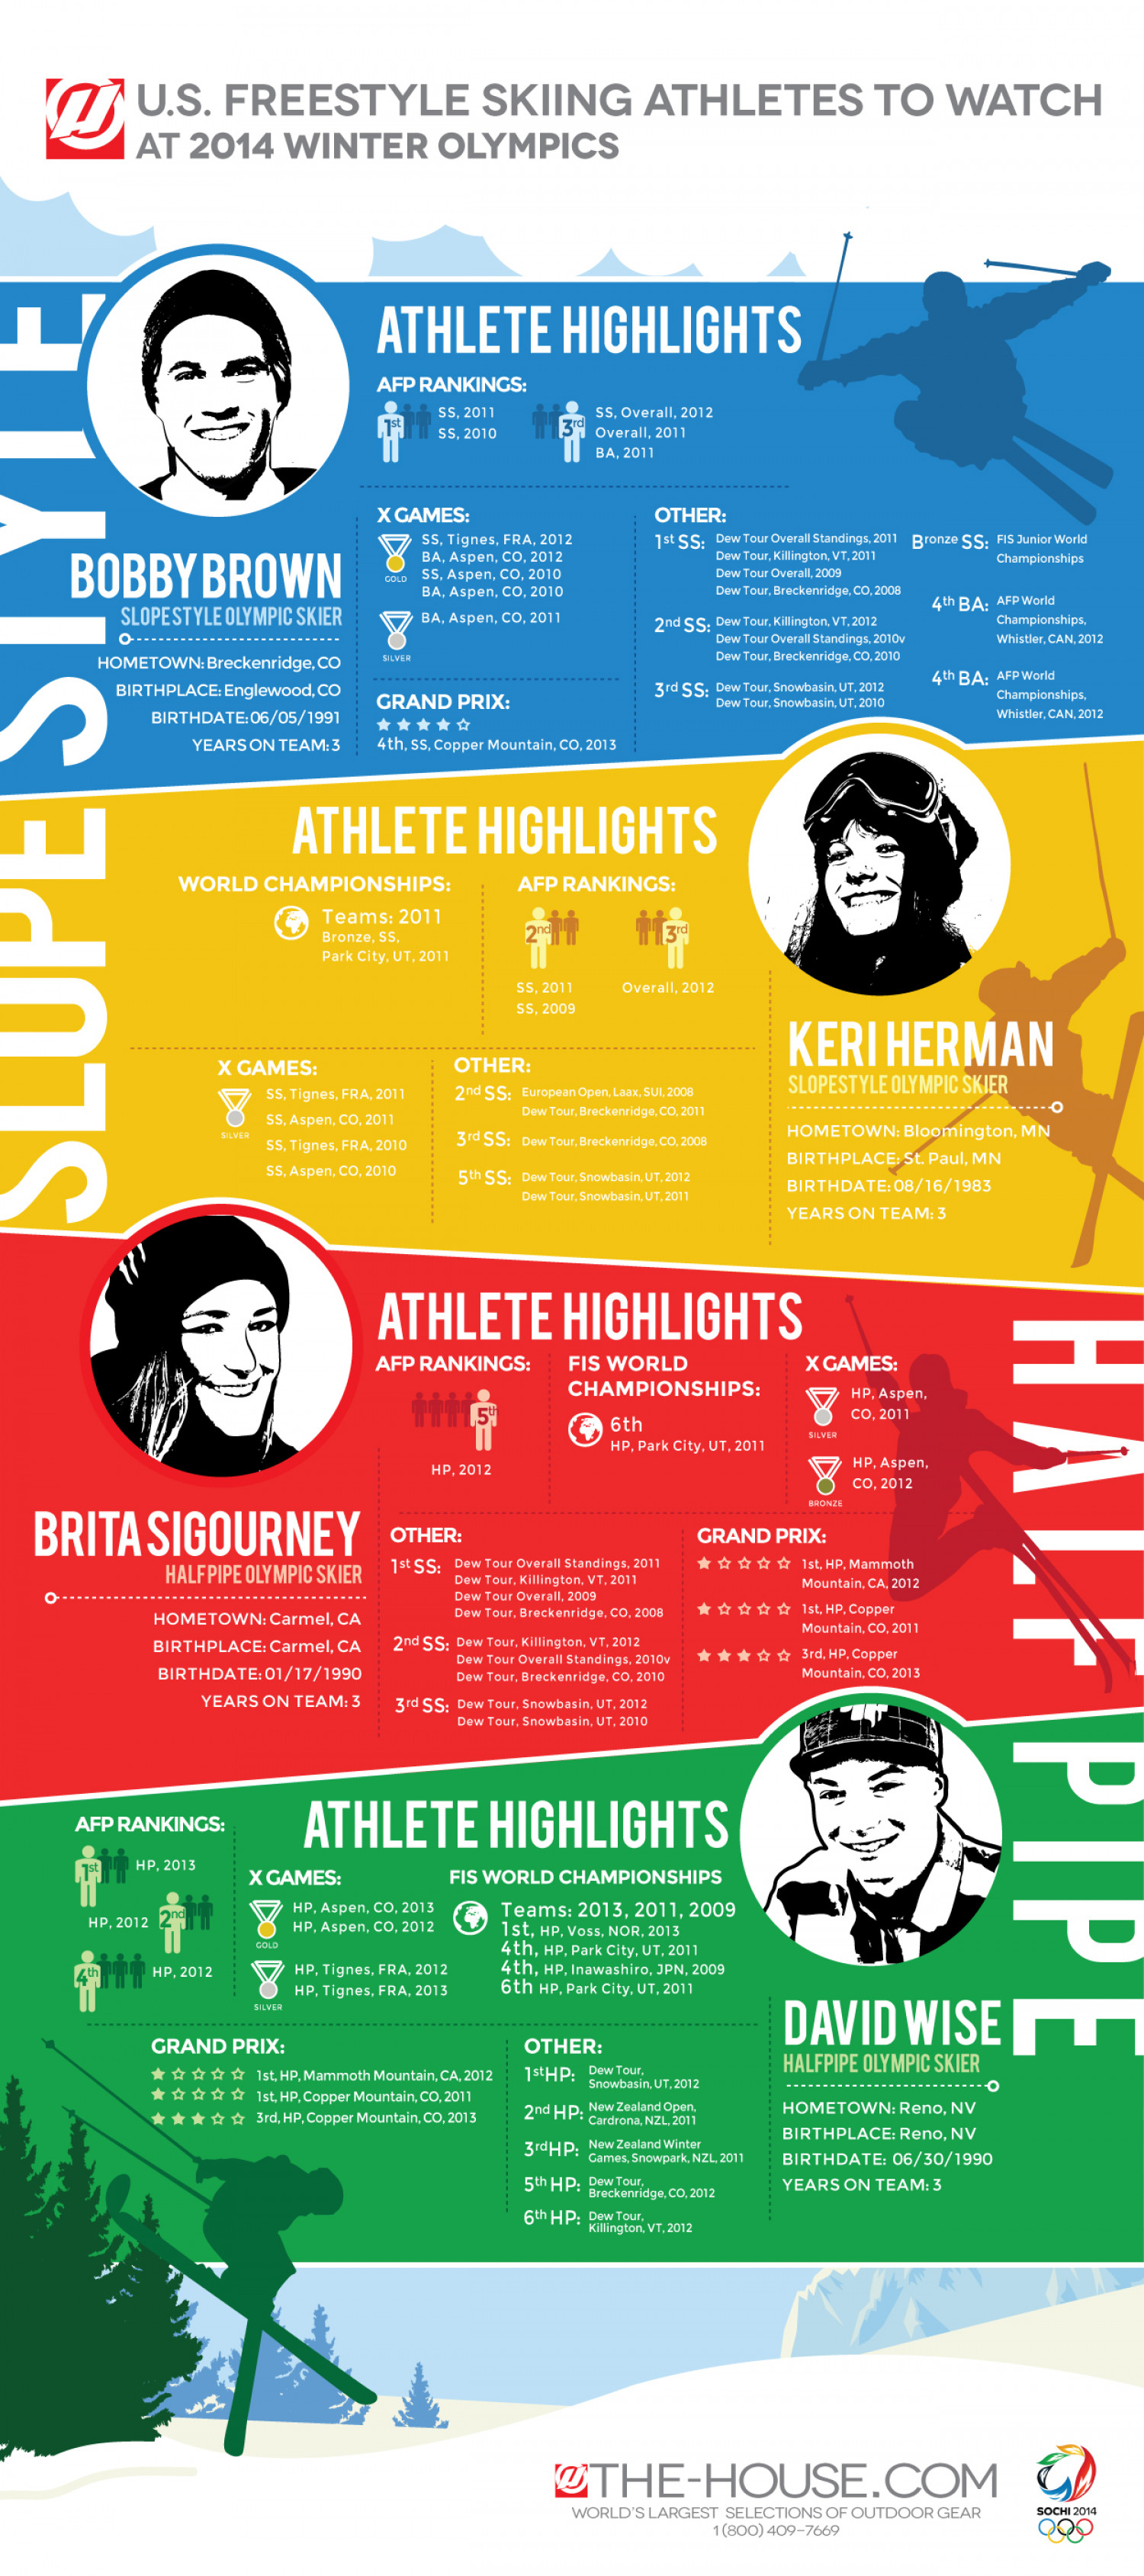 U.S. Freestyle Skiing Athletes to Watch  2014 Winter Olympics Infographic